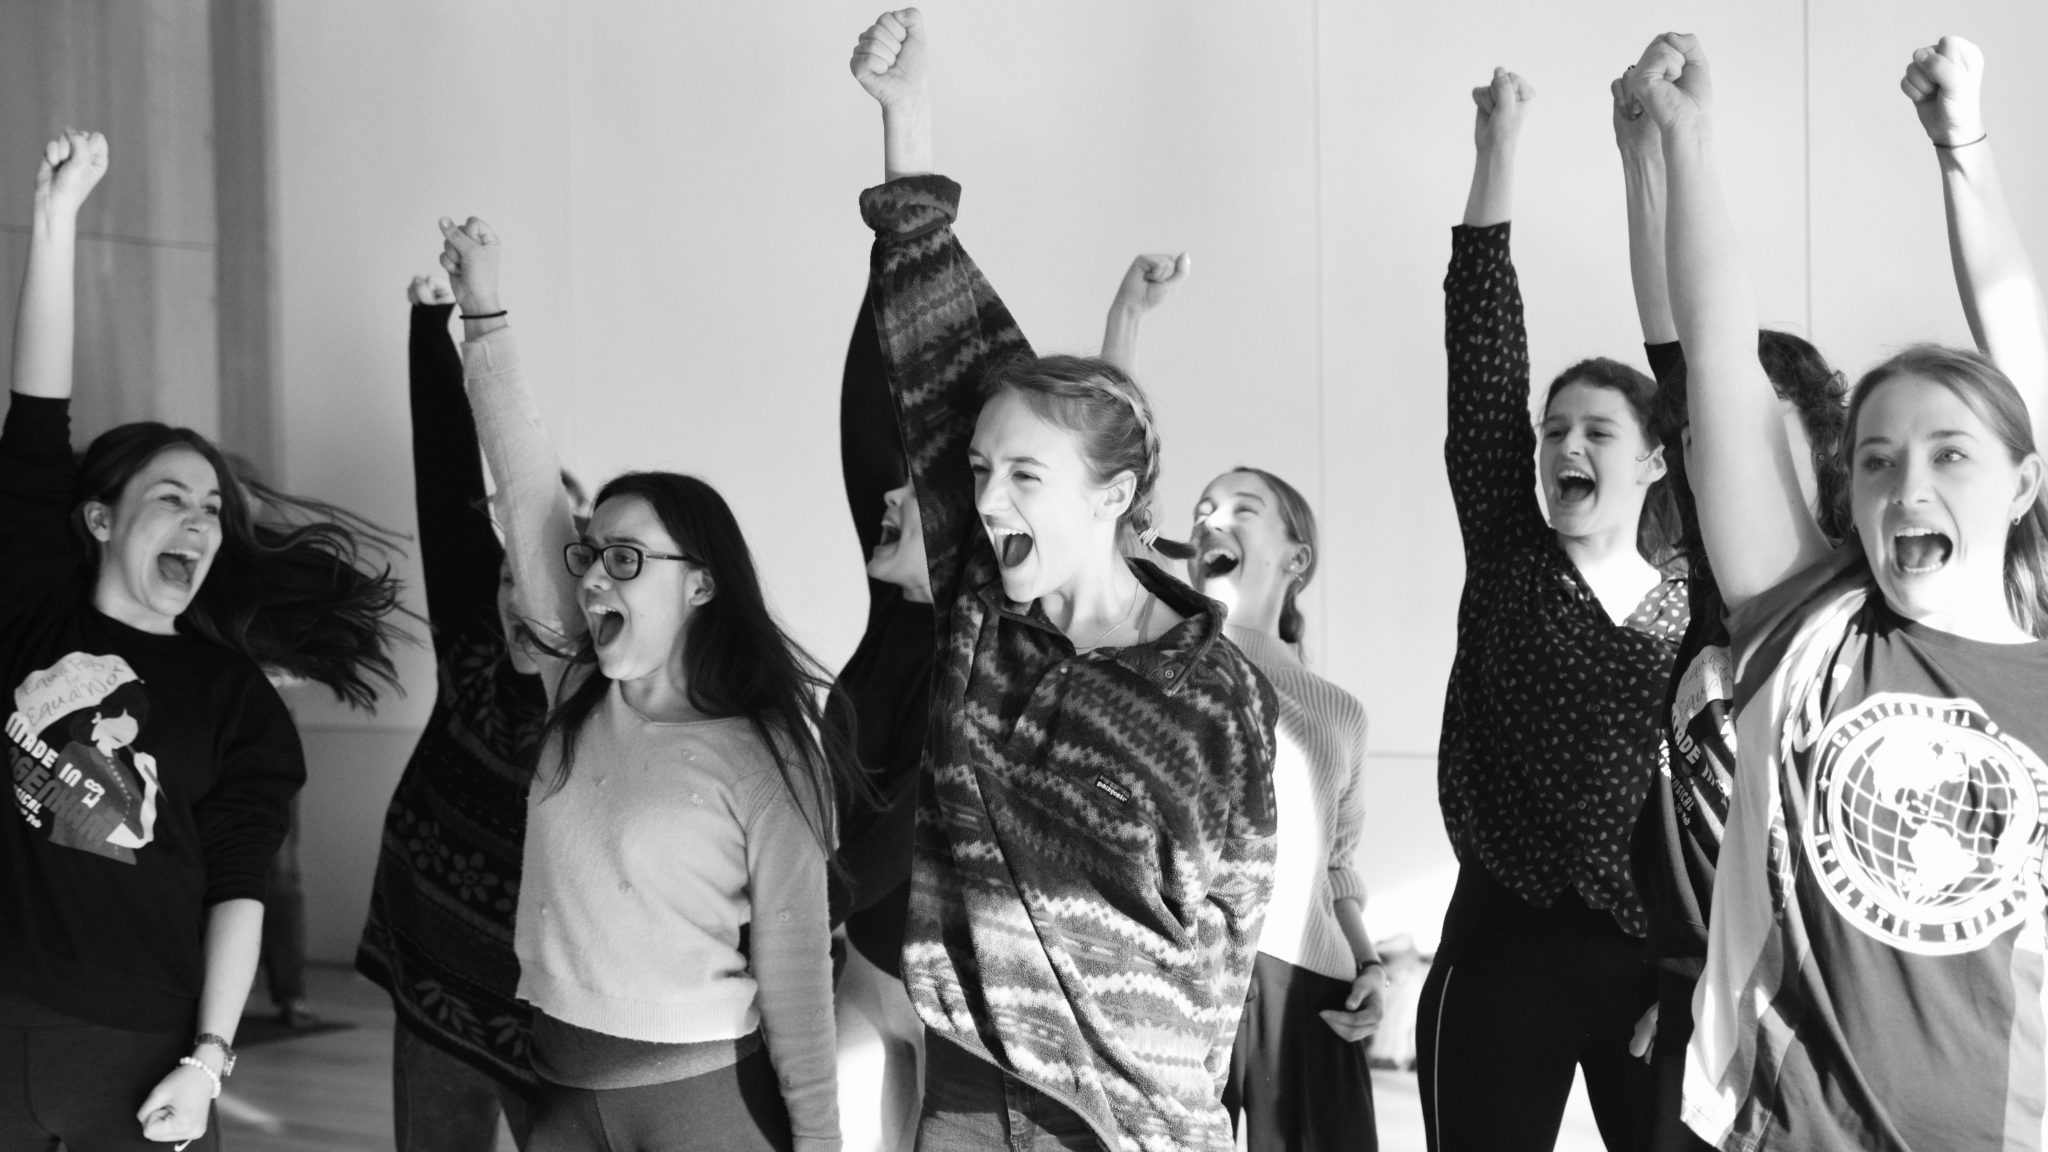 A group of actors in the musical Made in Dagenham mid-song, each with their right fist in the air